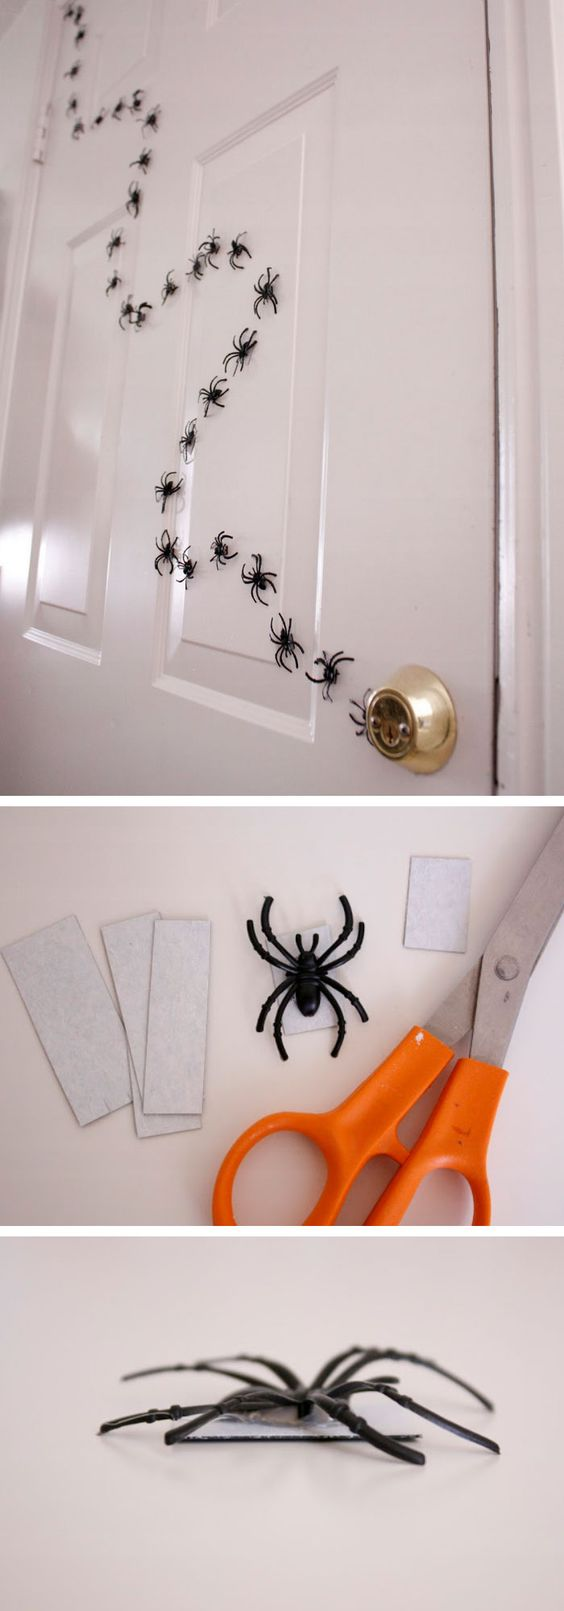 The best do it yourself halloween decorations spooktacular easy and cheap magnetic halloween spiders decorations delia creates spooktacular halloween diys crafts solutioingenieria